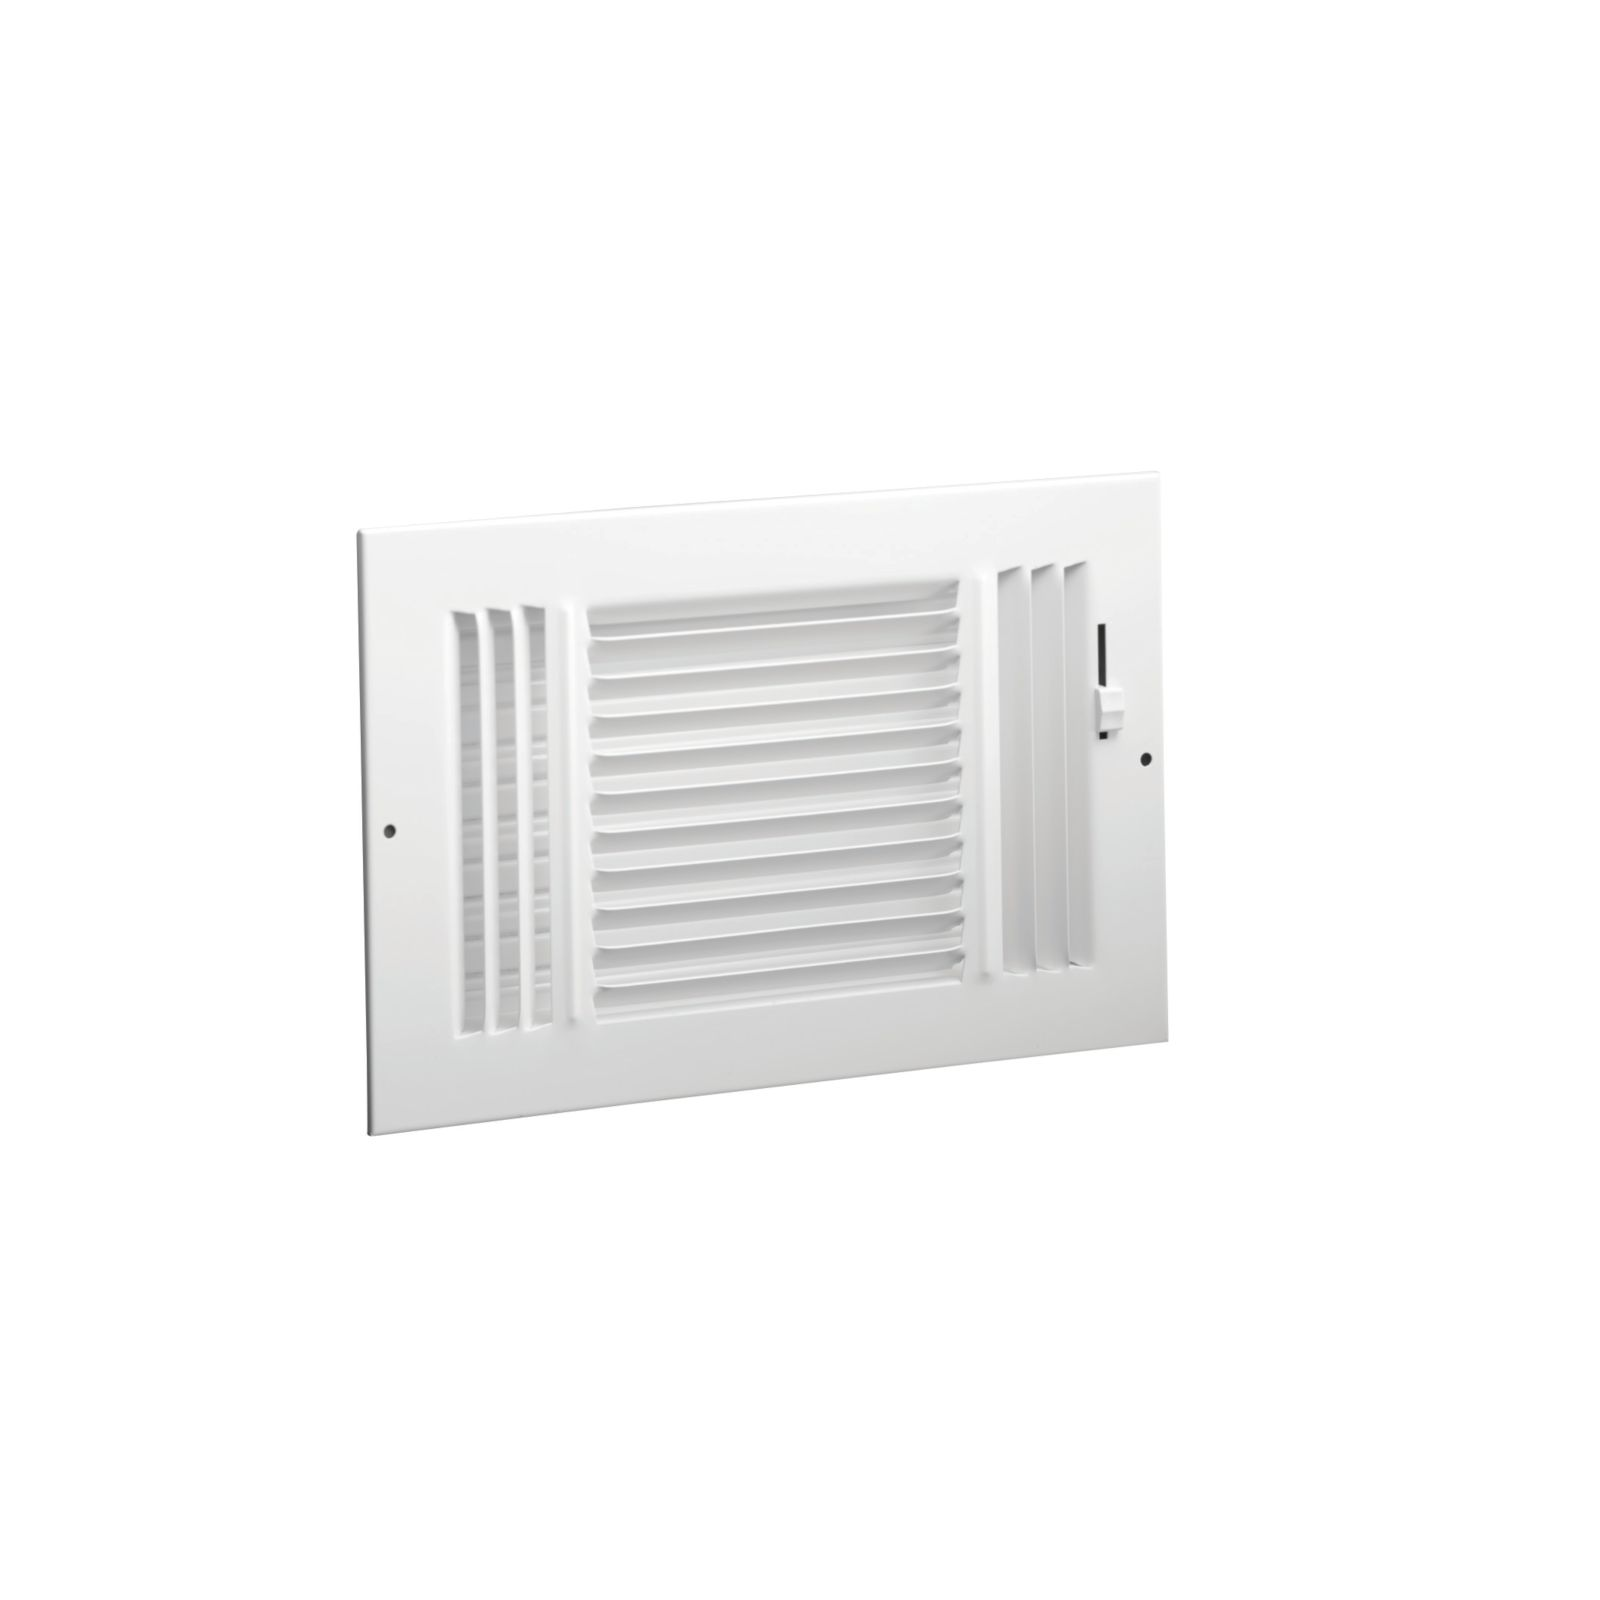 "Hart & Cooley 043876 - #683 Steel 3-Way Sidewall/Ceiling Register, Multi-Shutter Damper with Plastic Handle, White, 14"" X 6"""